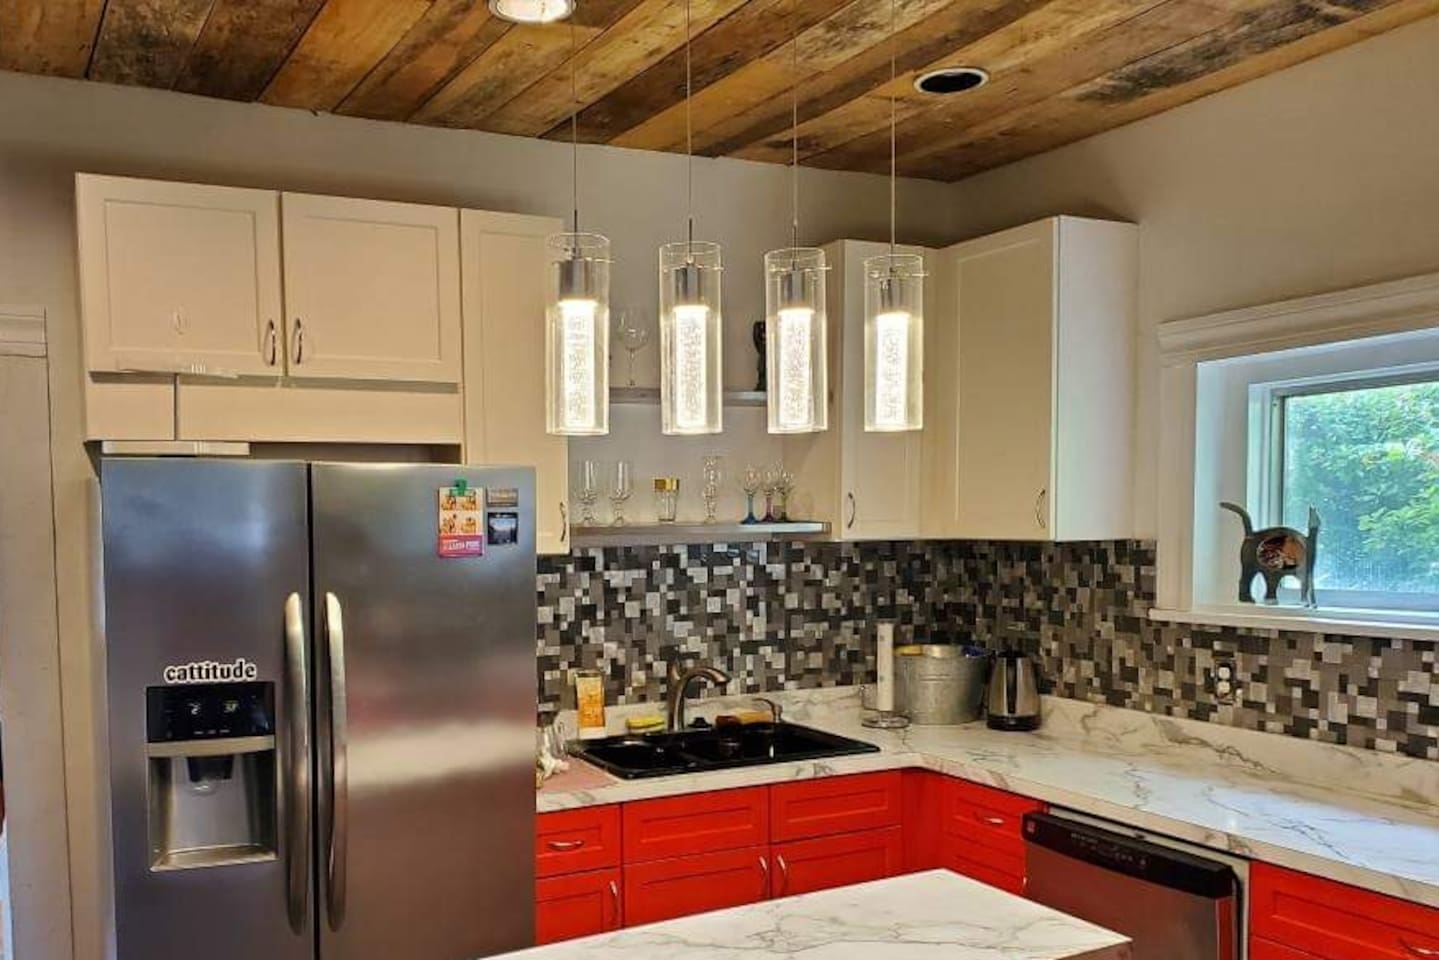 Brand new kitchen featuring stainless steel appliances, a custom wood ceiling, gas stove and rolling island.